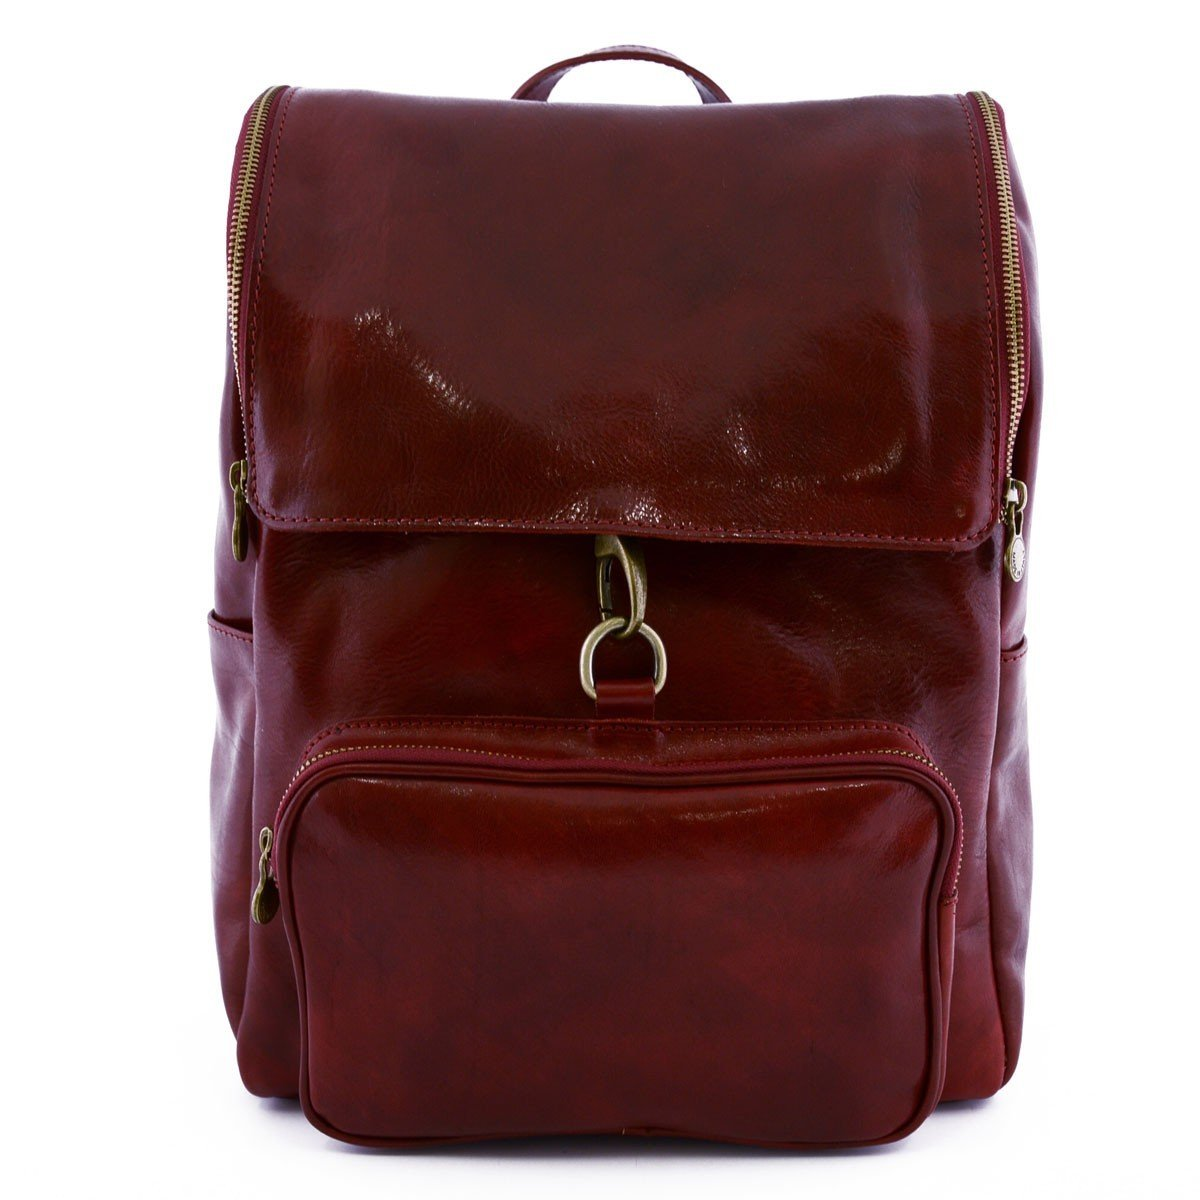 Made In Italy Genuine Leather Backpack With Zip Closure And Carabiner Color Red - Backpack   B01AM2Q9A0